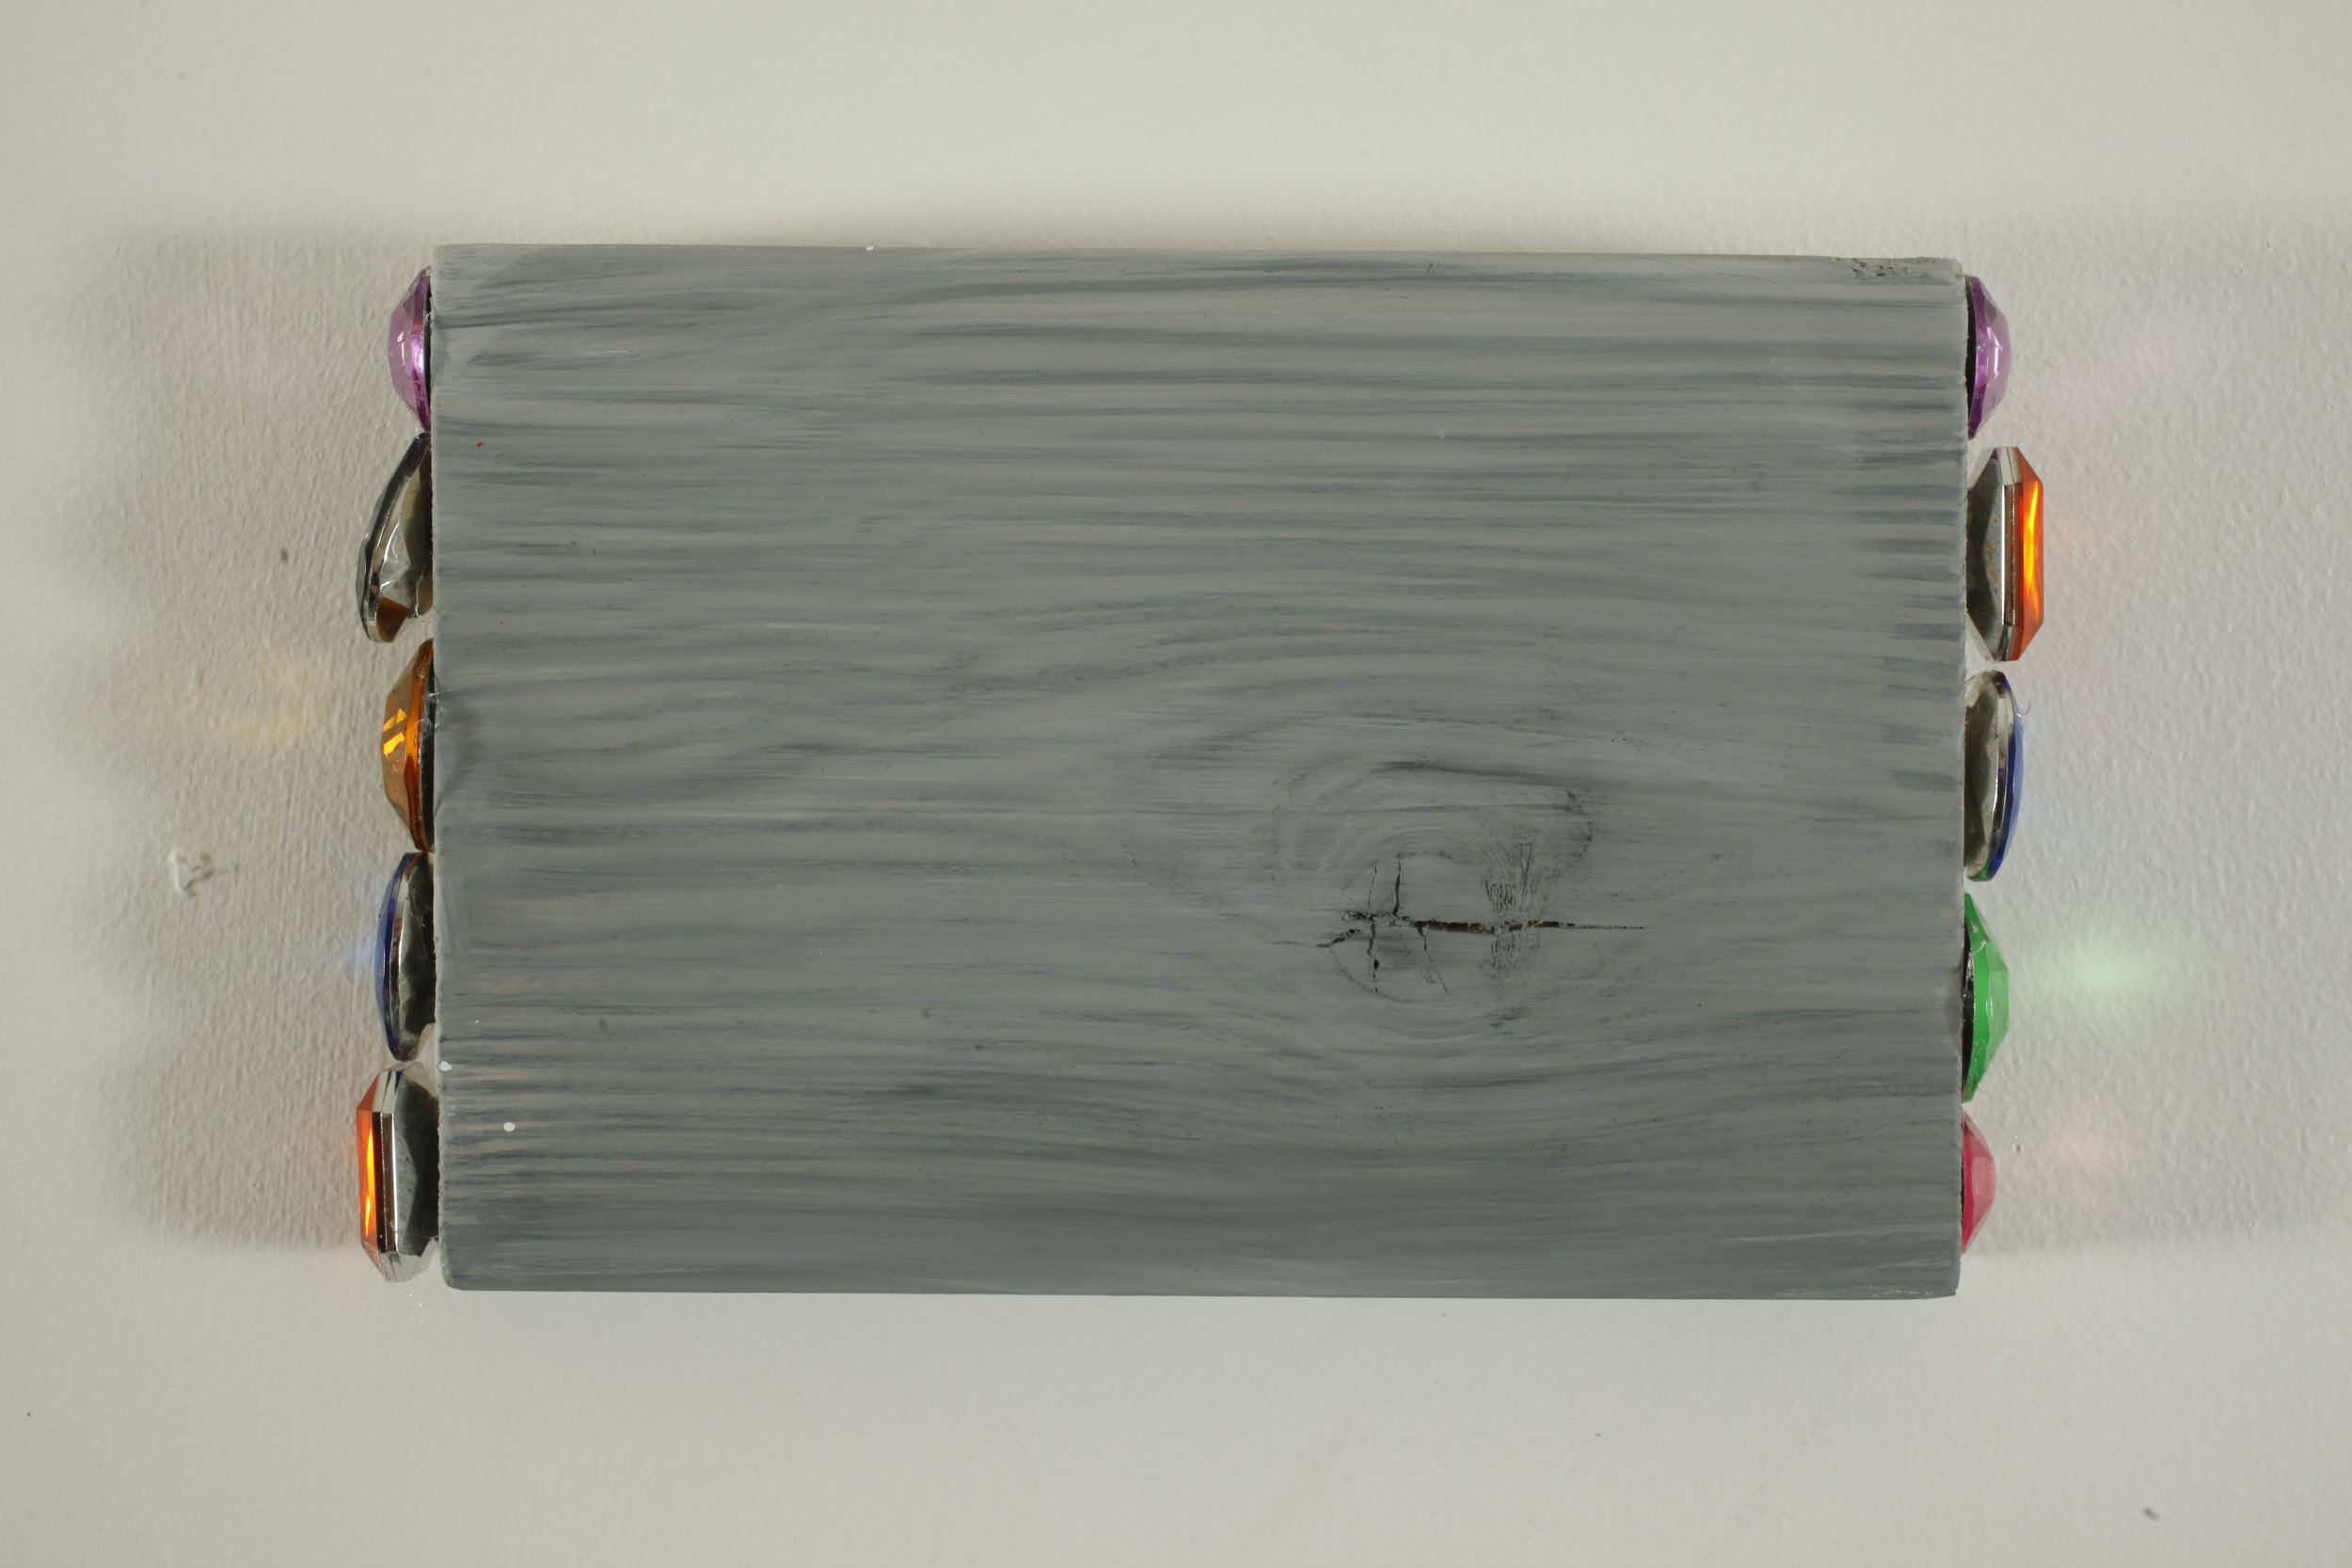 Relic - painted wood and fake crystals - 12cmx17cm -2012.jpg